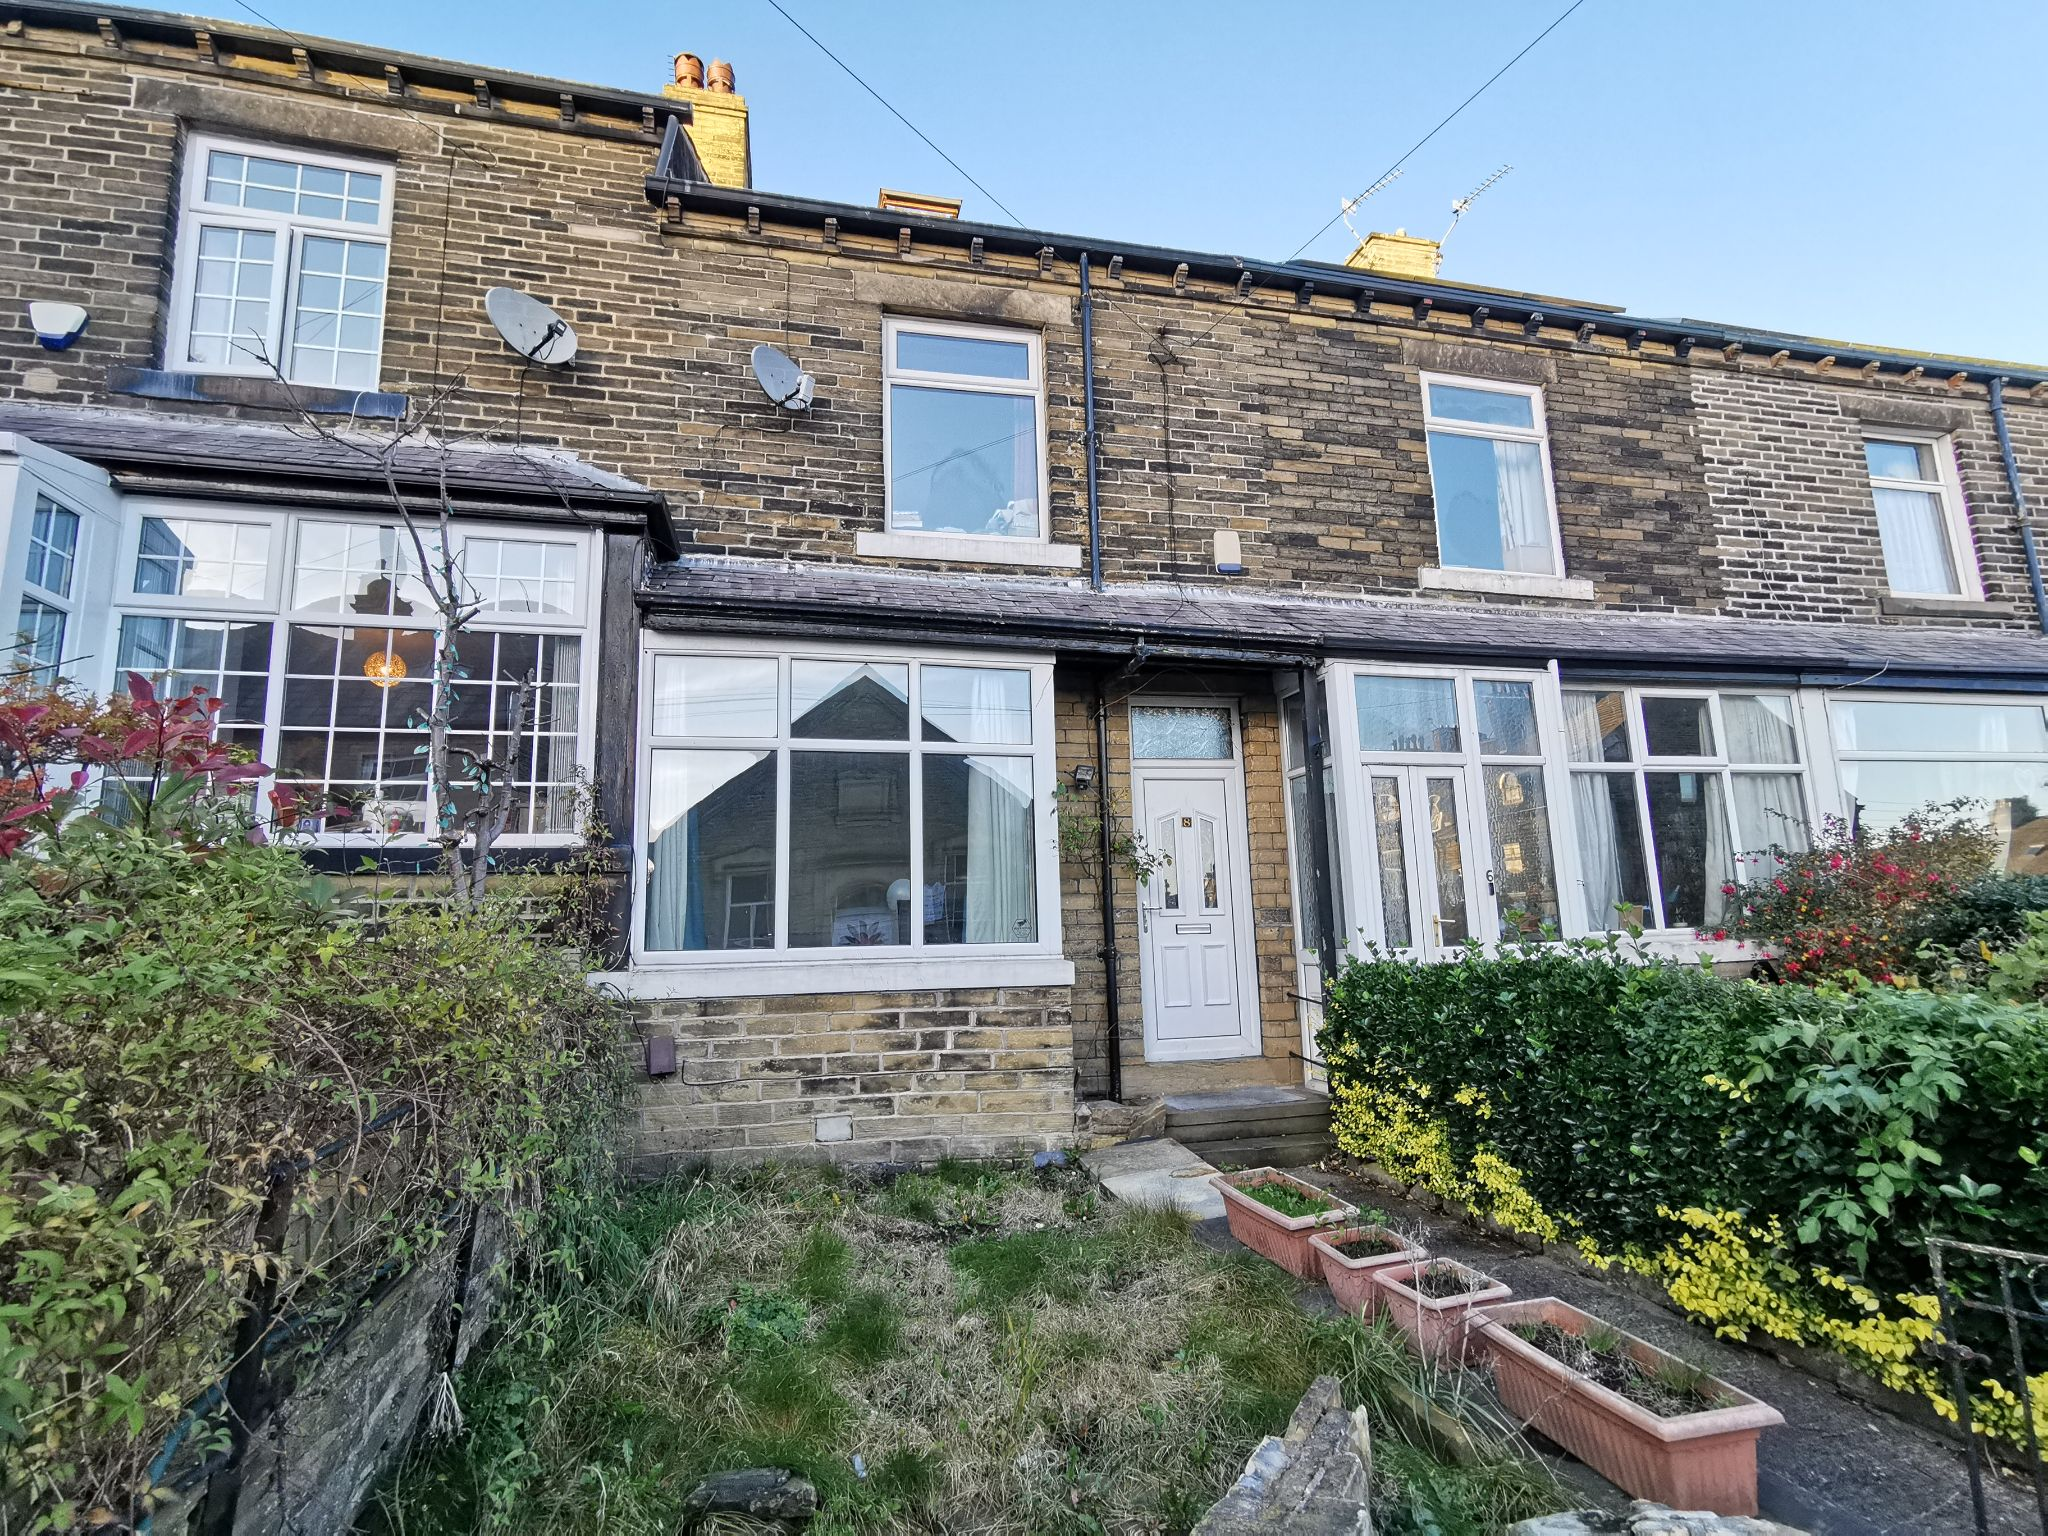 4 bedroom mid terraced house in Bradford - Photograph 1.